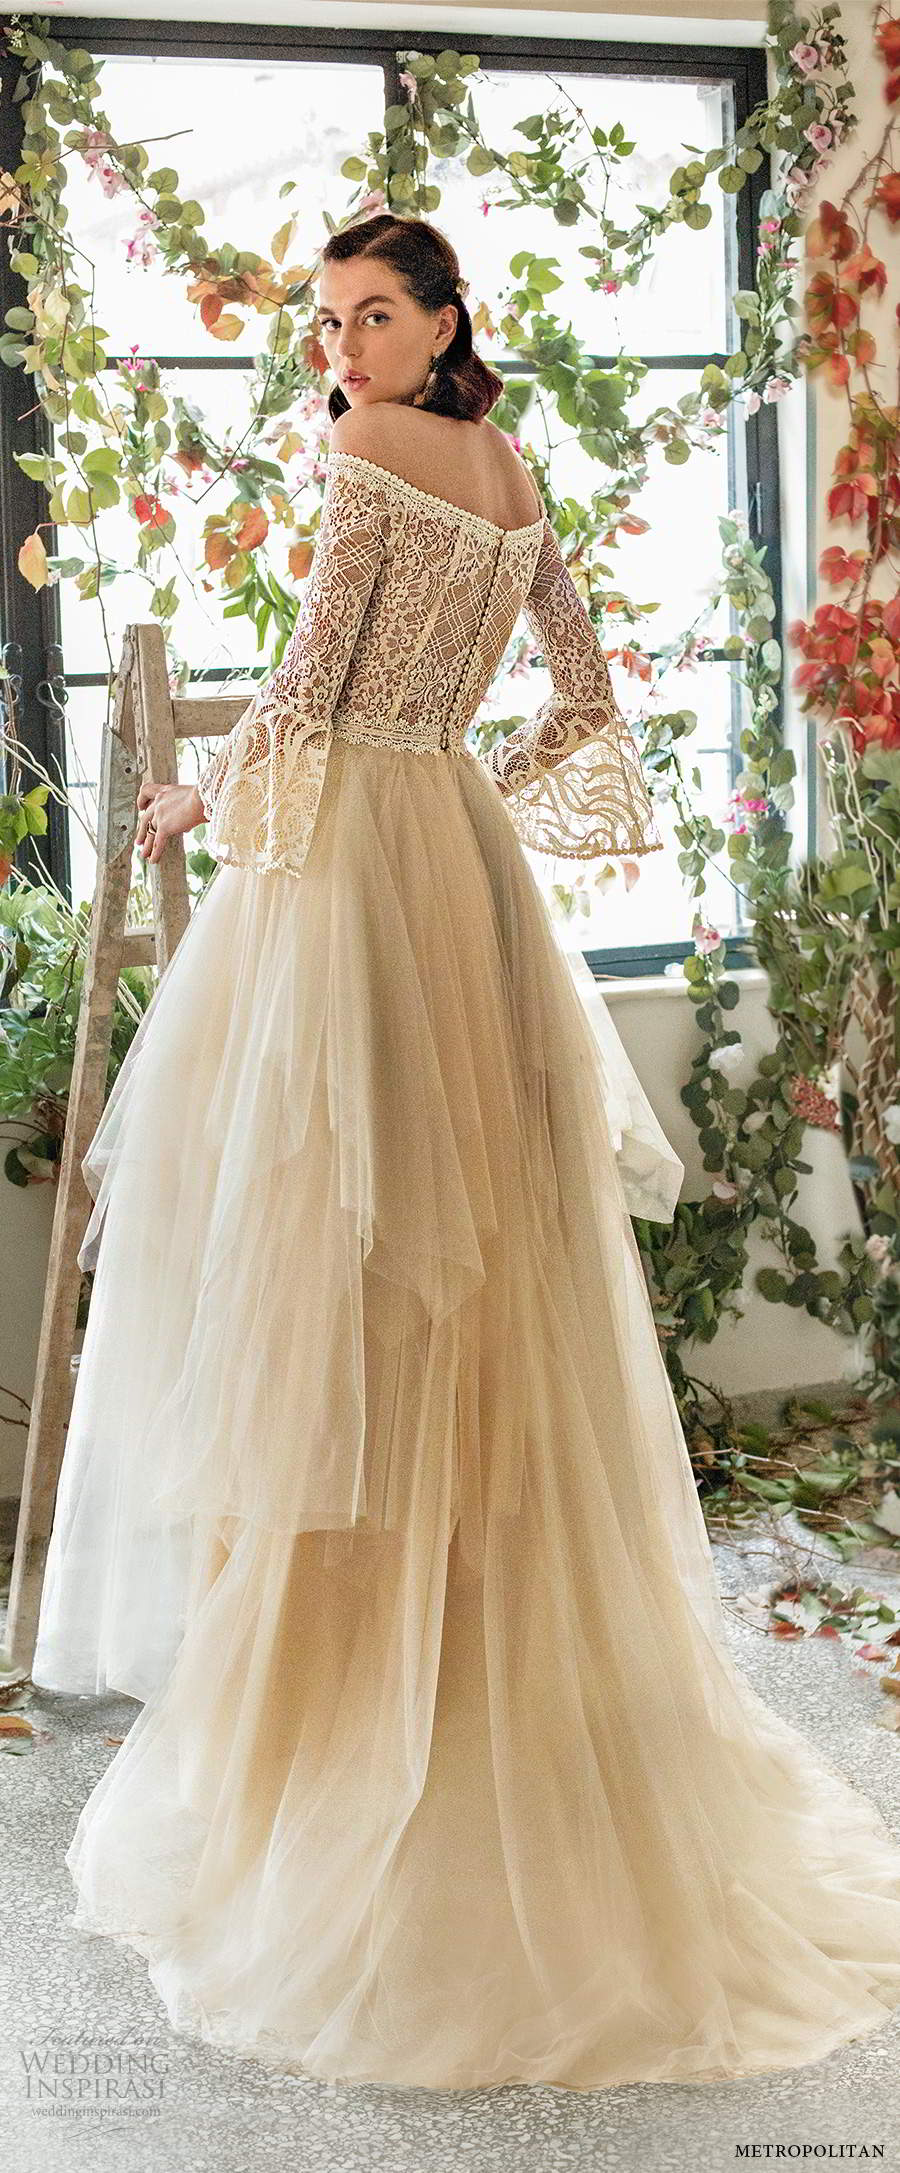 metropolitan spring 2020 bridal illusion long sleeve off shoulder straight across neckline embellished lace bodce tiered skirt ball gown a line wedding dress chapel train (2) bv